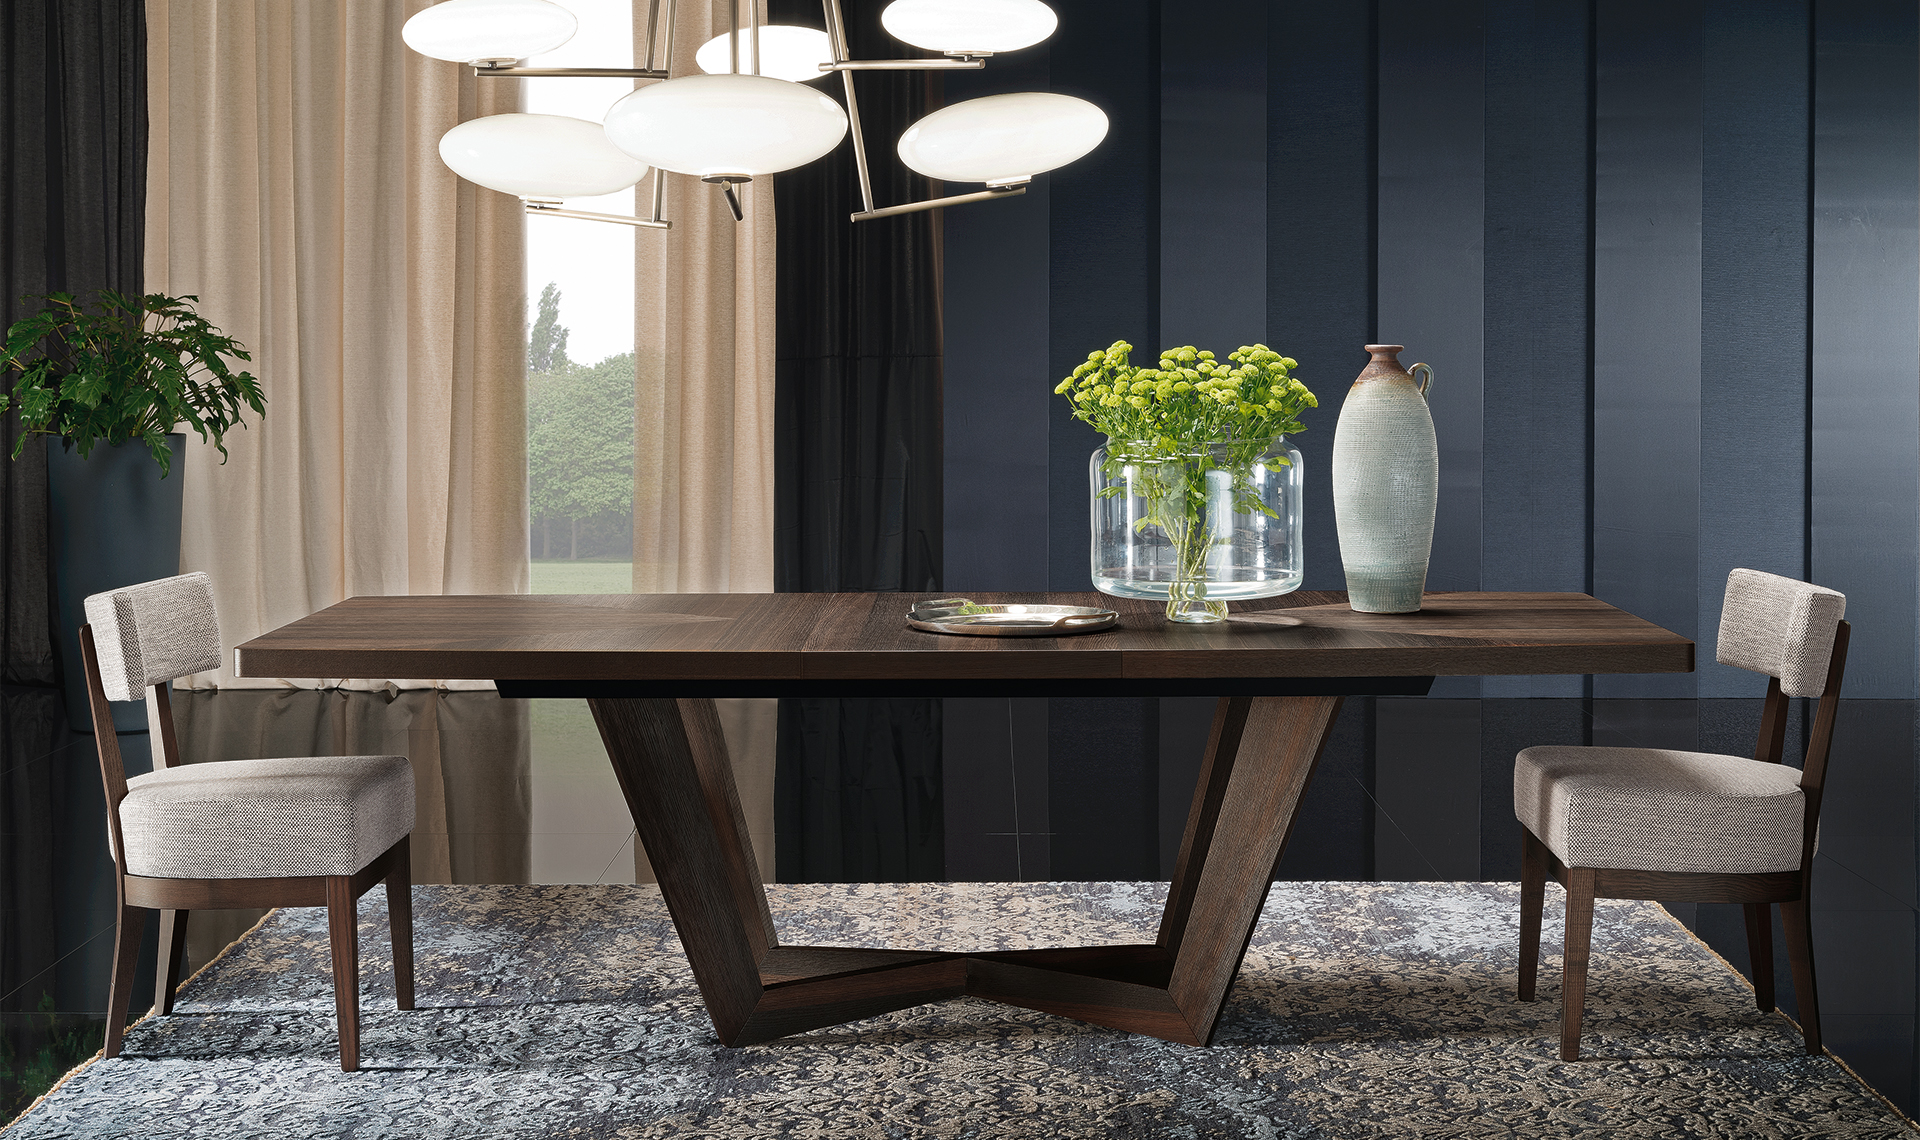 Accademia Dining Table and chairs